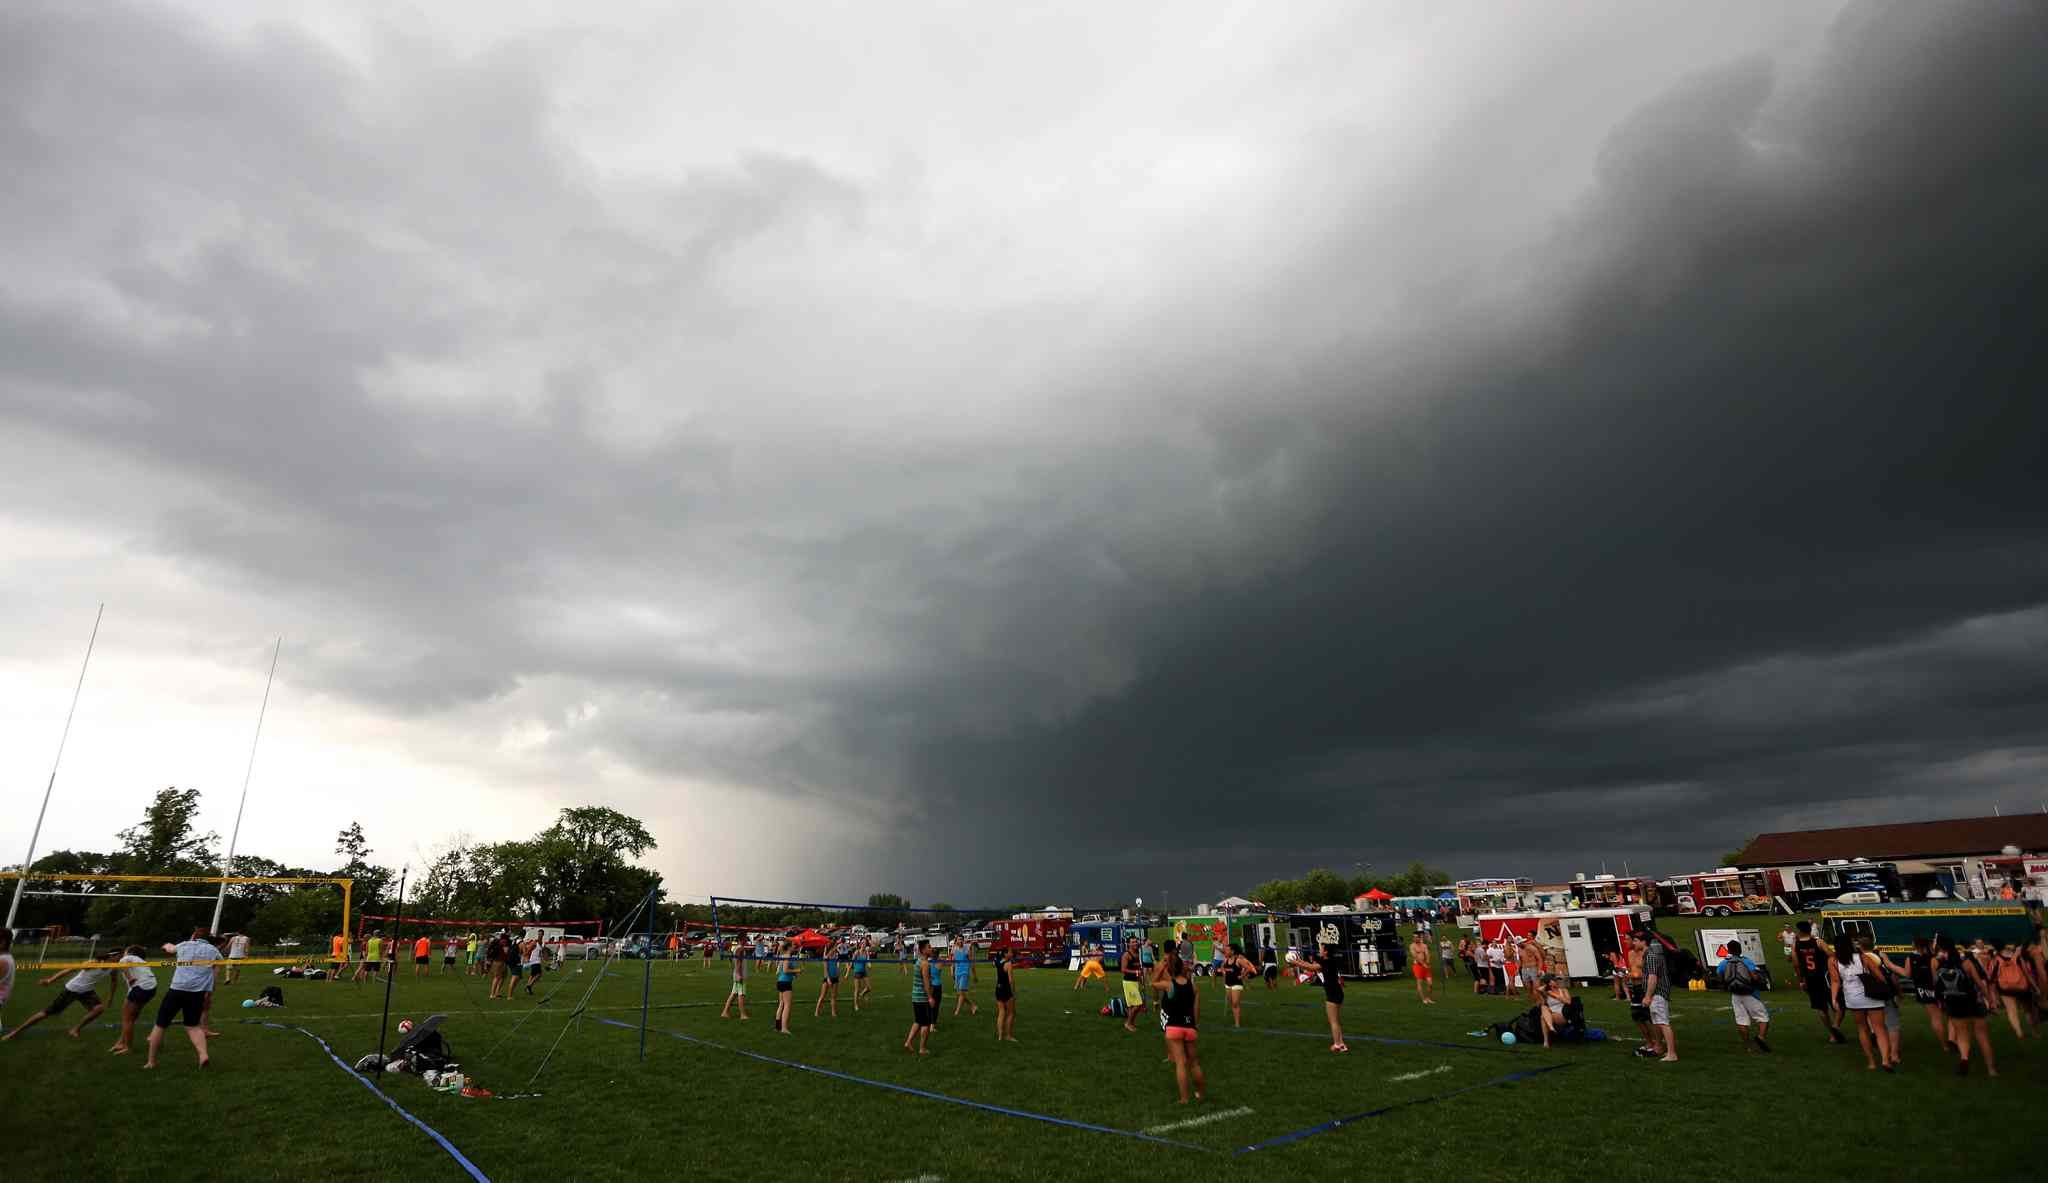 Storm clouds above Super-Spike volleyball tournament at Maple Grove Rugby Park, Friday, July 18, 2014.